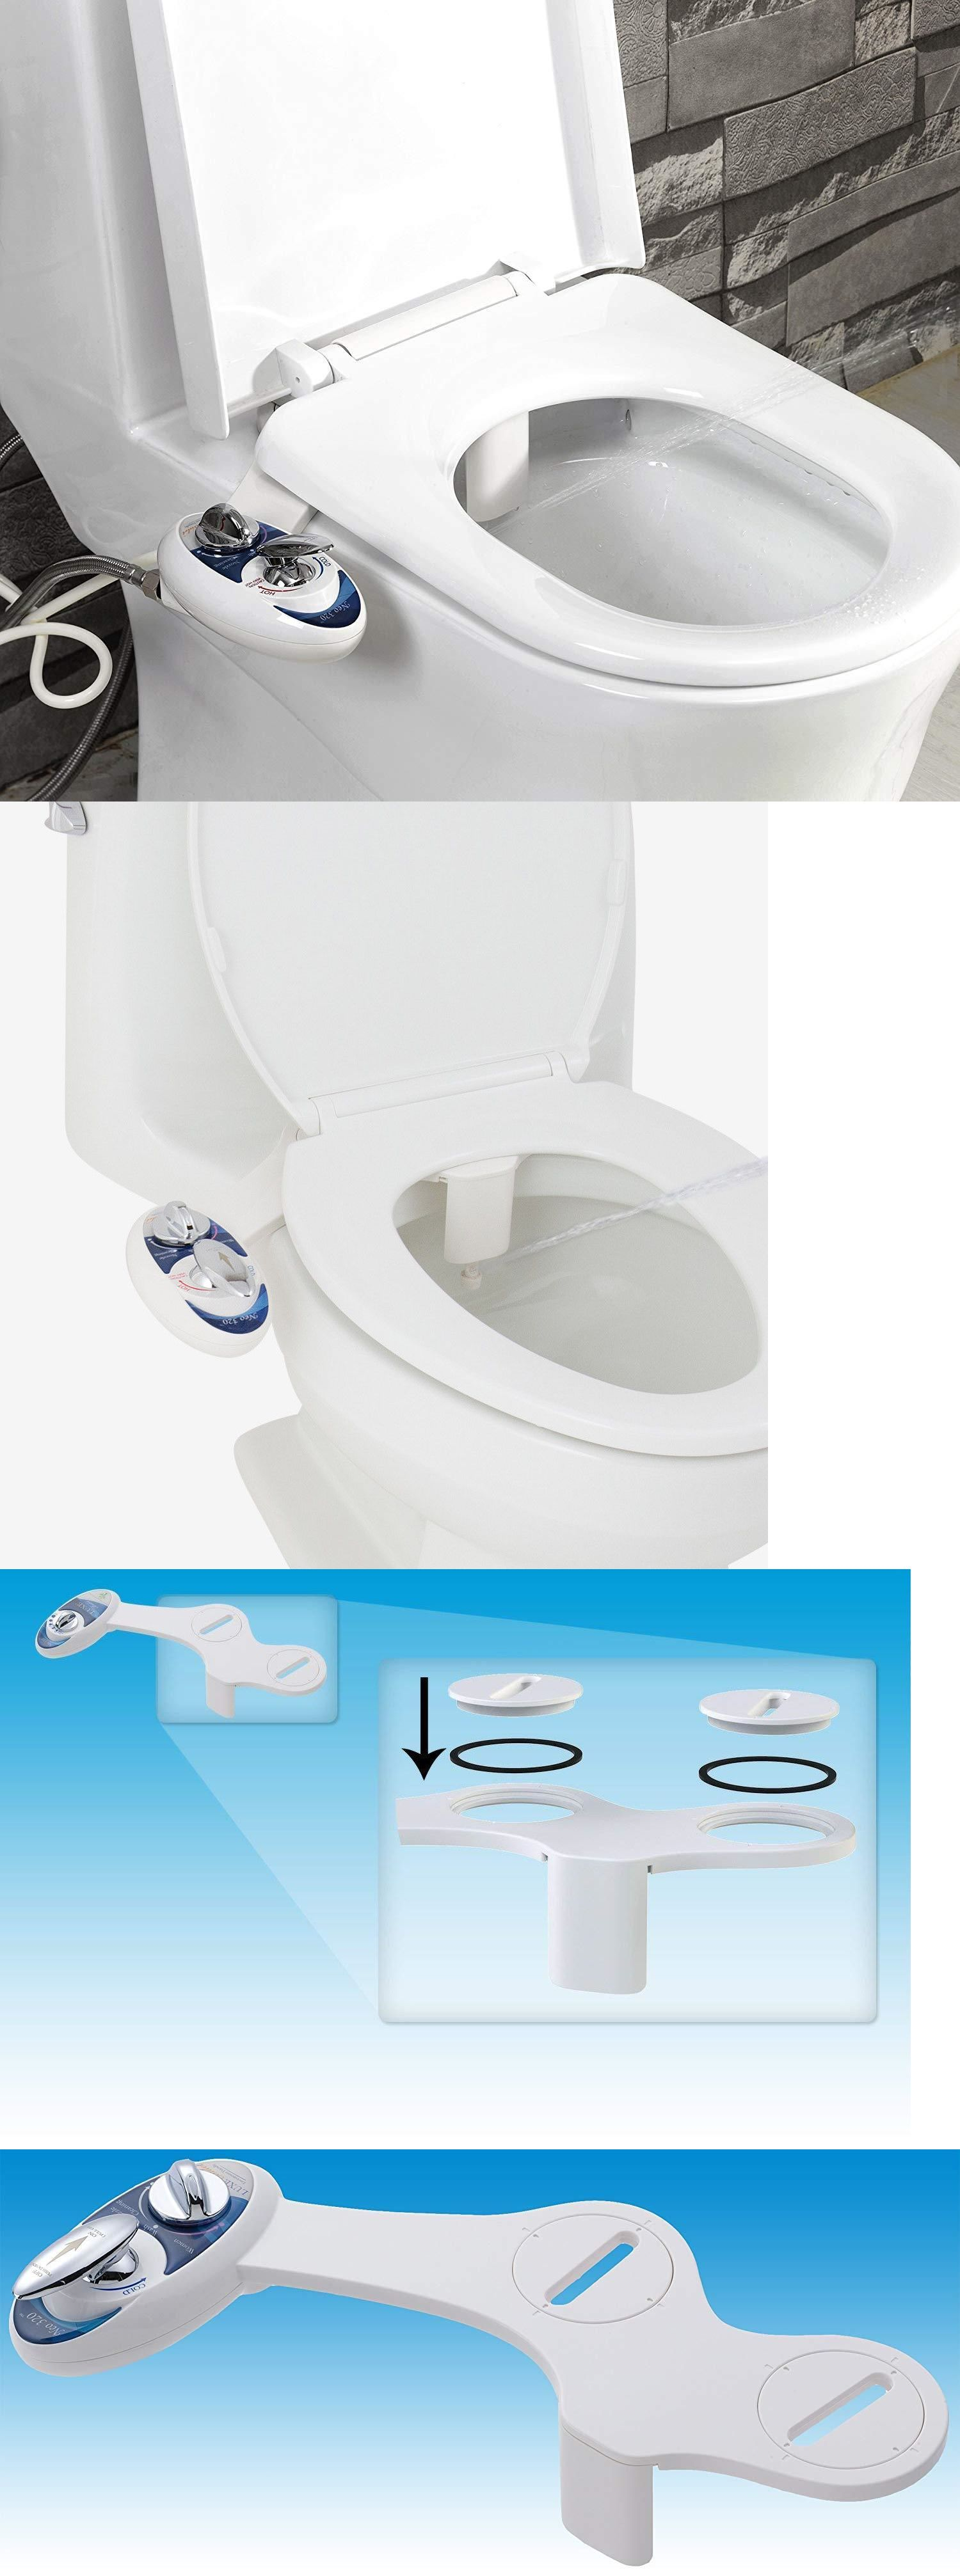 Bidets And Toilet Attachments 101405 Luxe Bidet Neo 320 Toilet